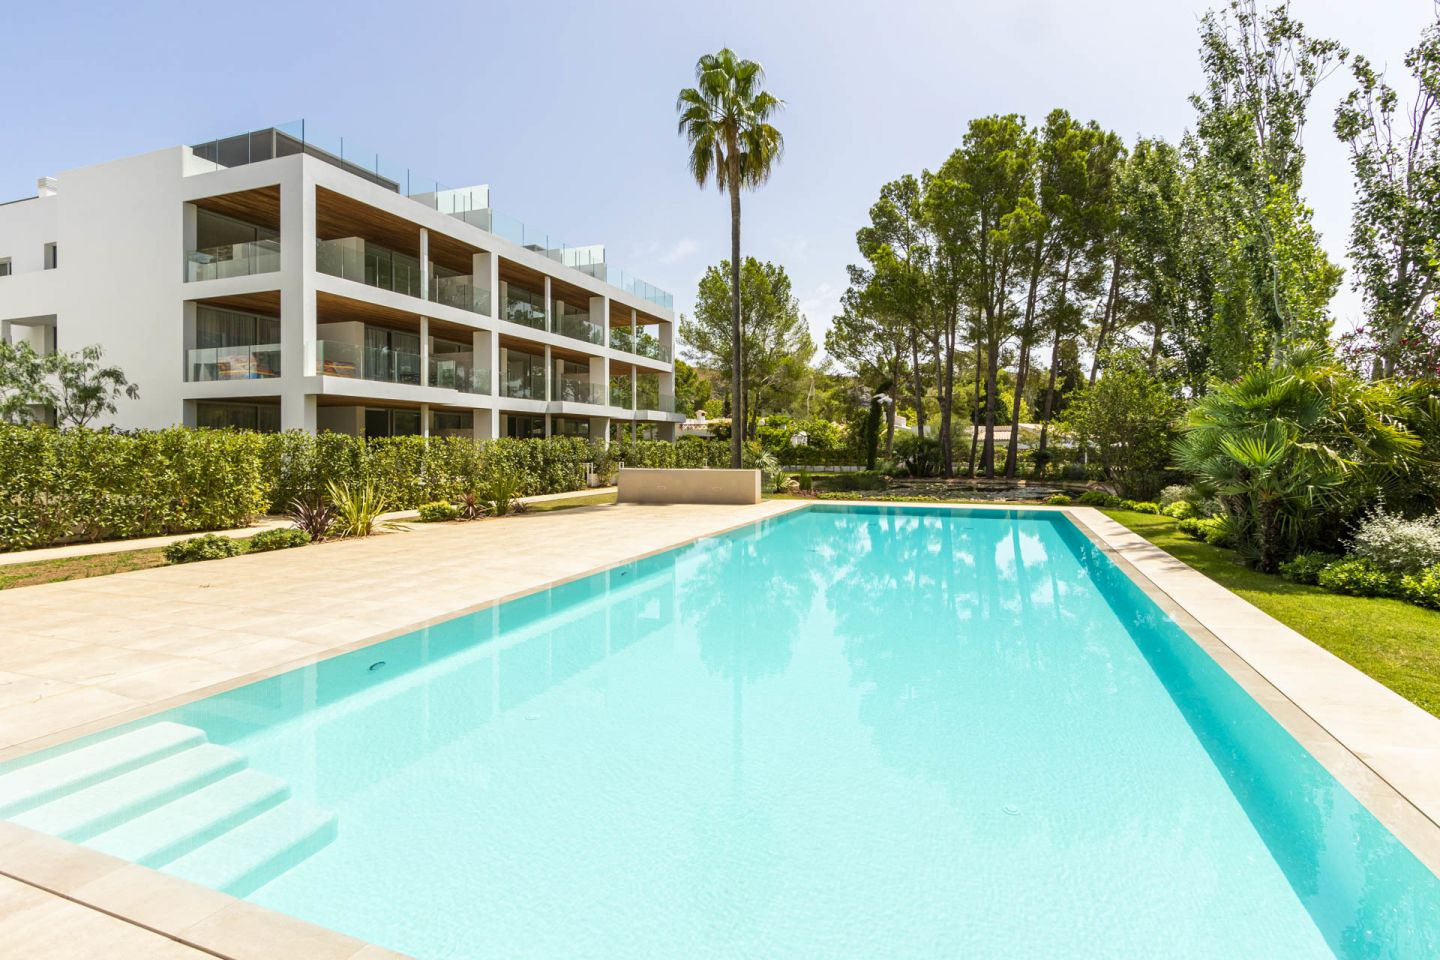 4 Bed Penthouse for sale in PUERTO POLLENSA 3